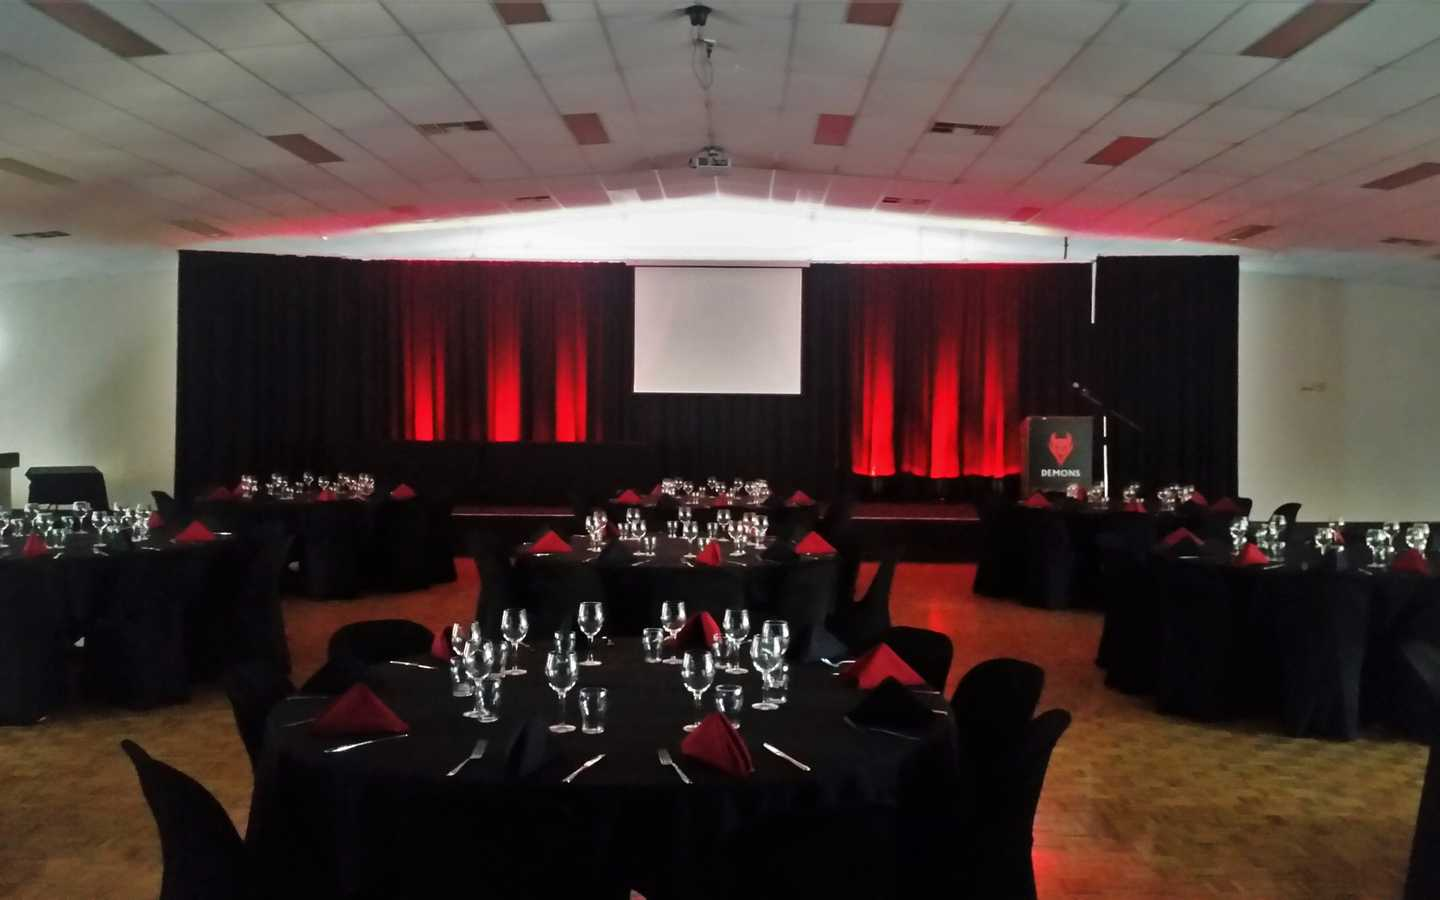 Lathlain Function Centre: Function room in Lathlain WA